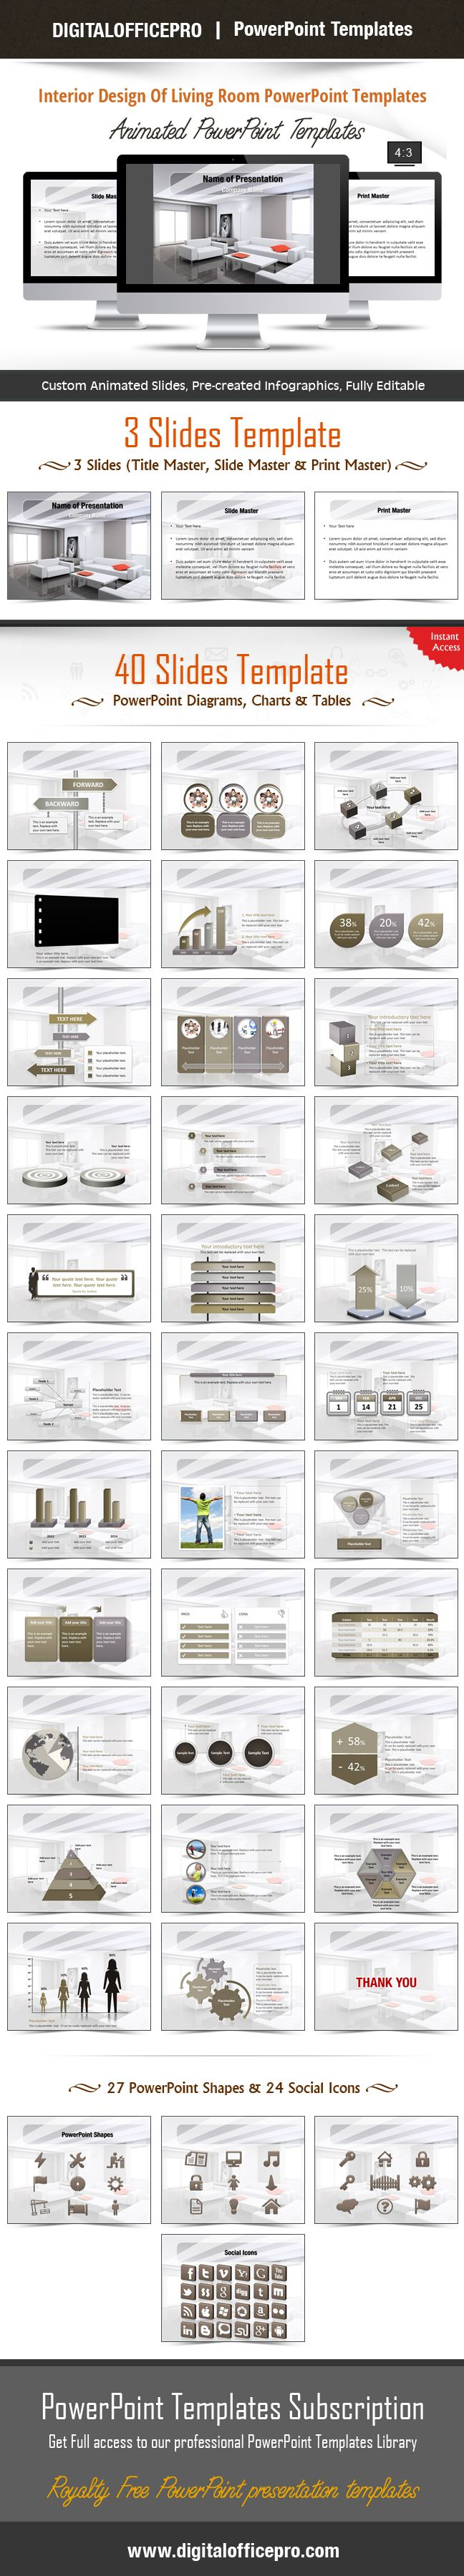 Impress and Engage your audience with Interior Design Of Living Room PowerPoint…